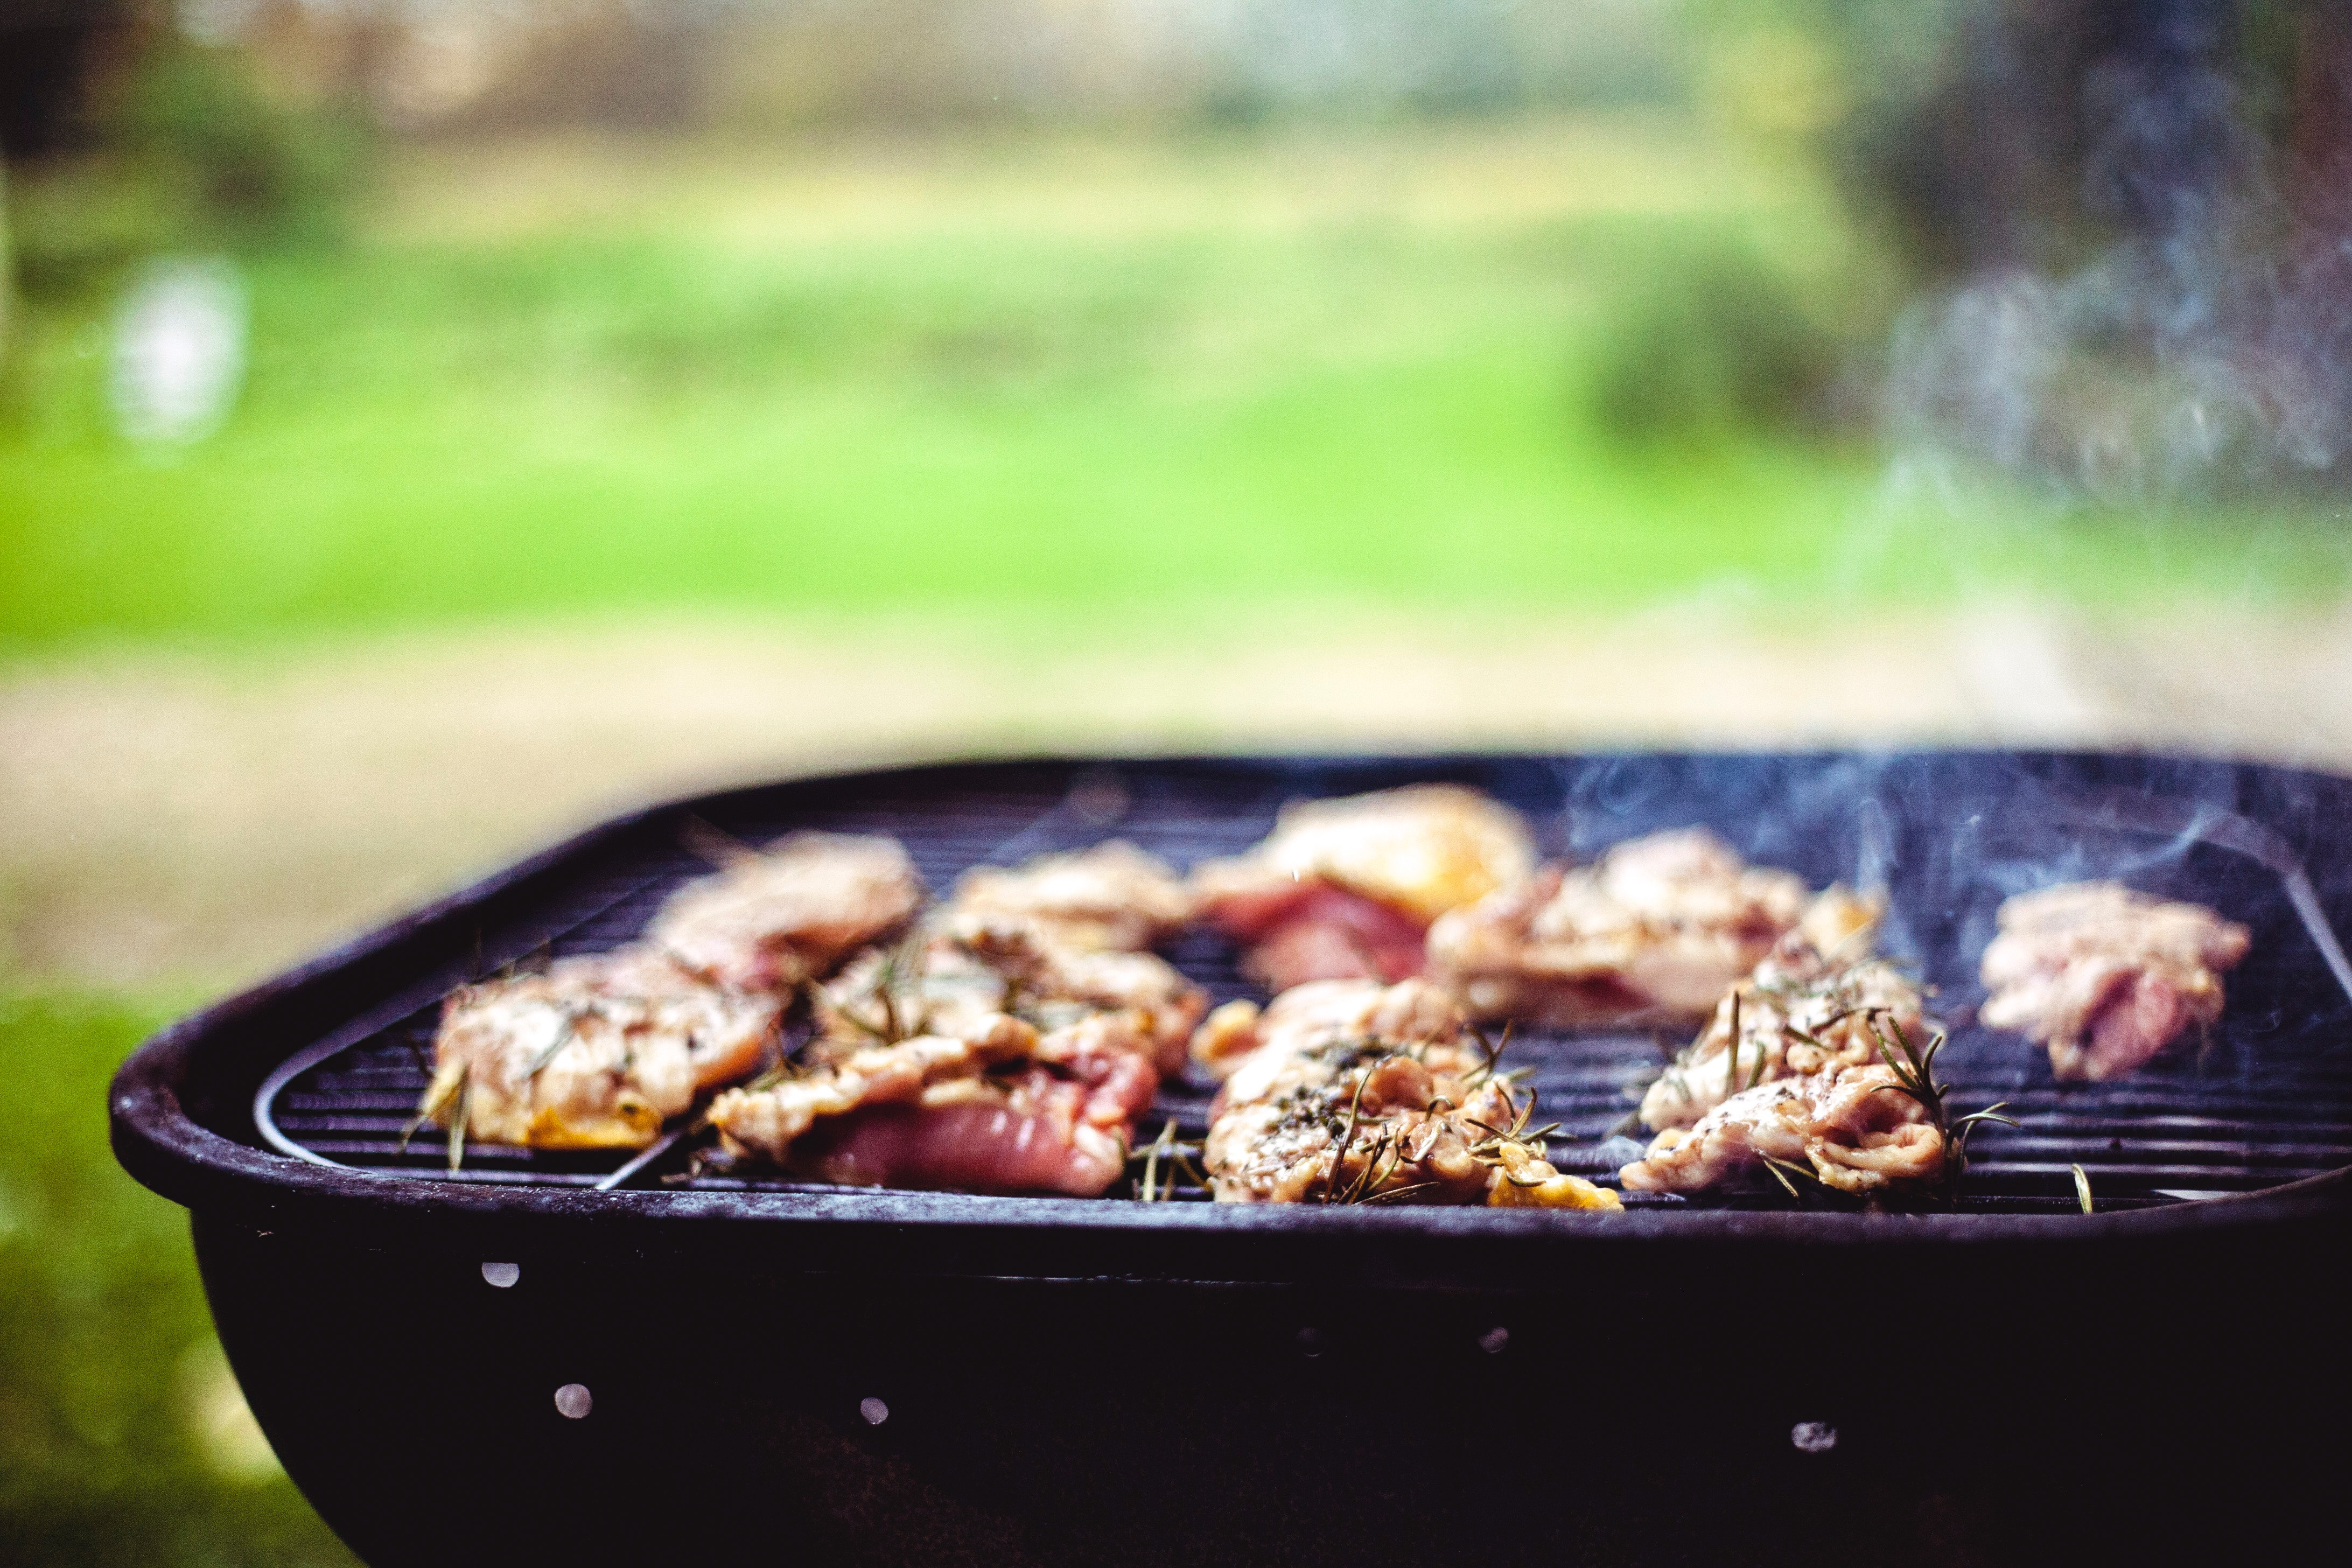 Barbecue Meat 183 Free Stock Photo